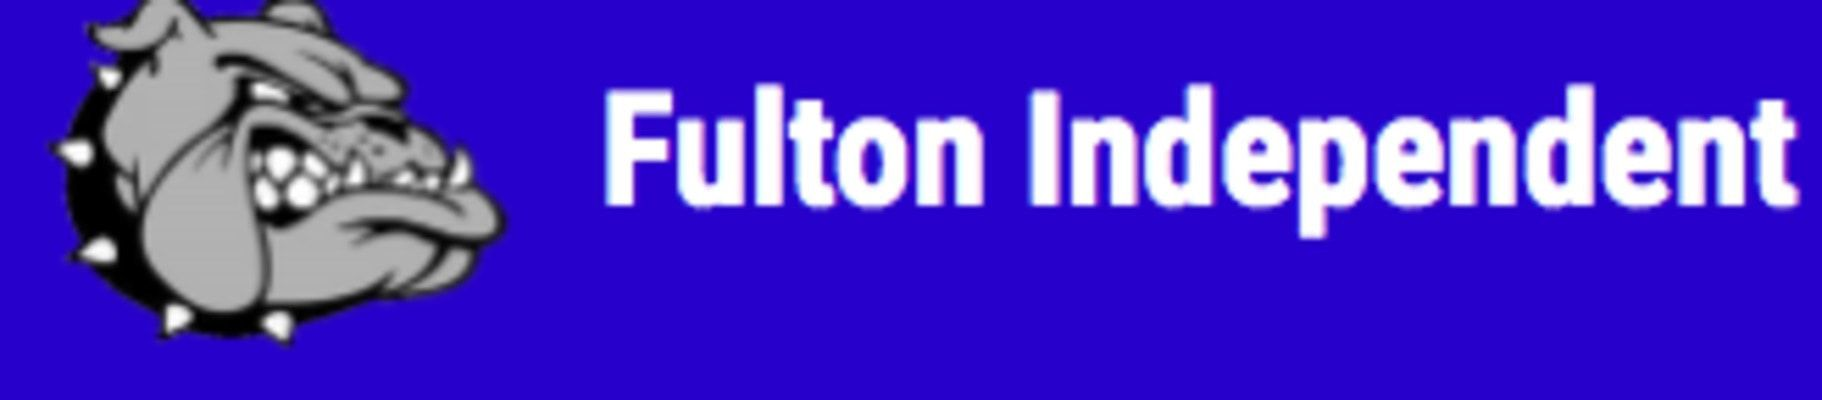 FULTON INDEPENDENT SCHOOL BOARD REGULAR MEETING TUESDAY, MAY 19